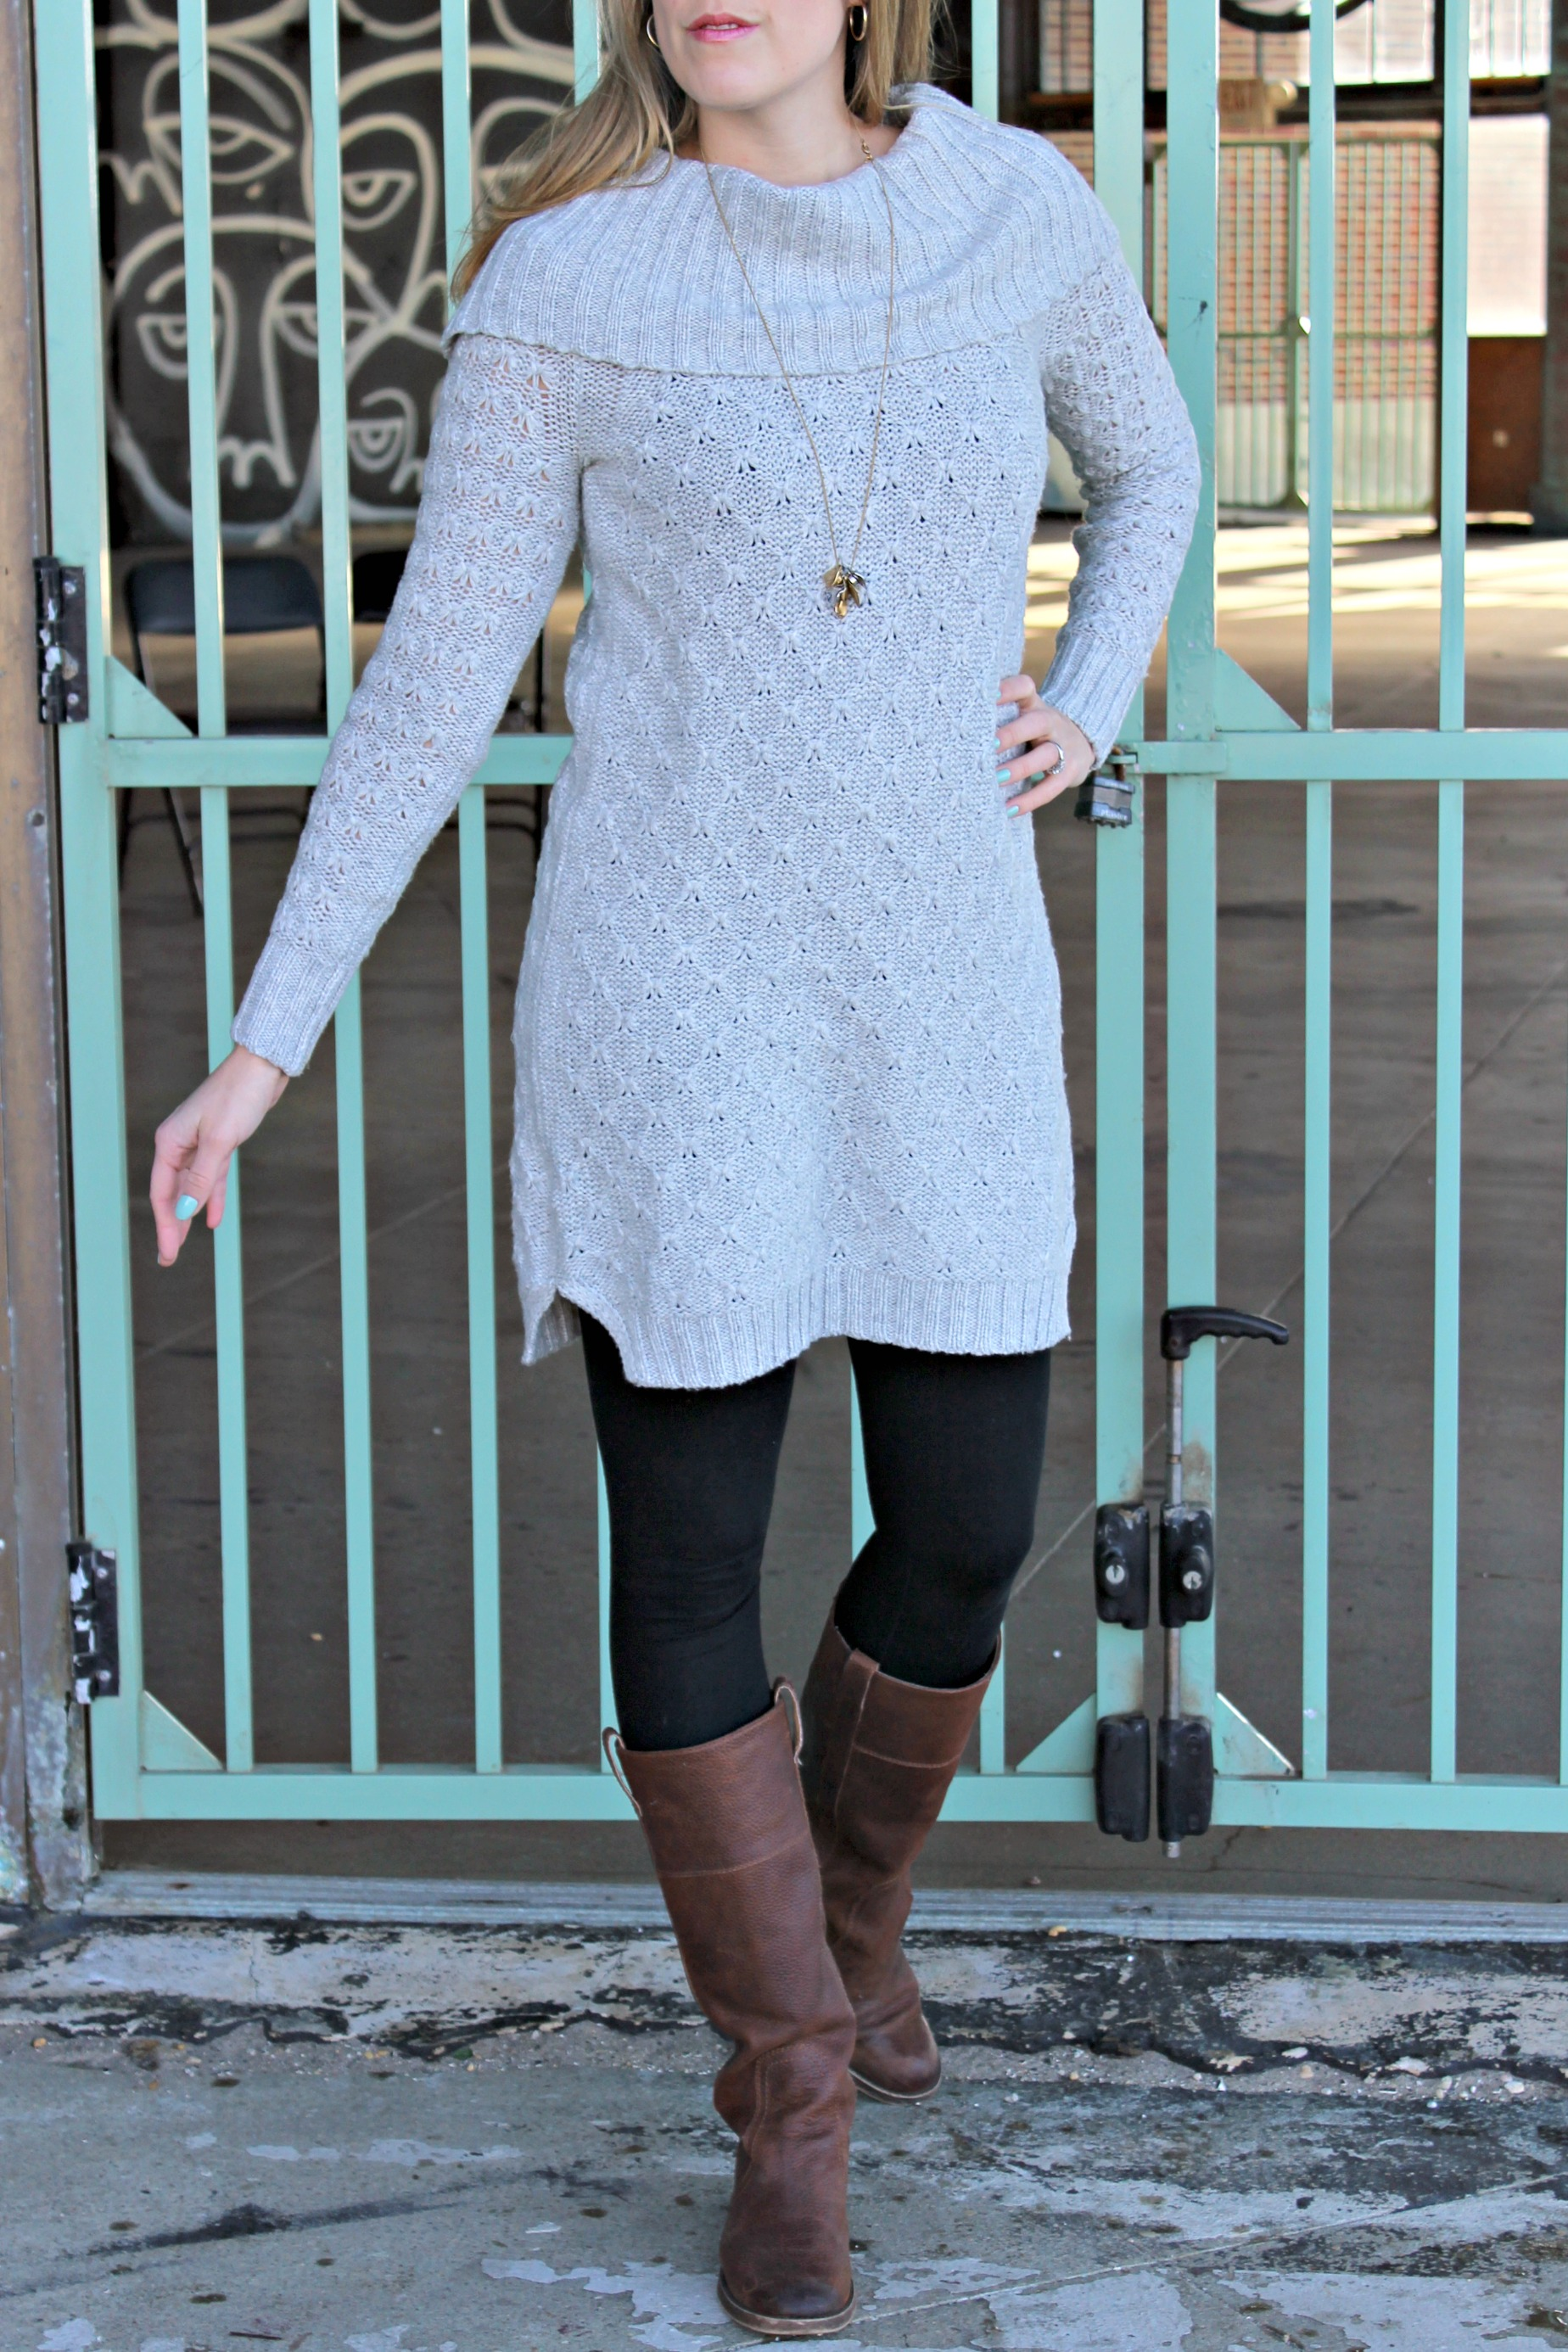 Wearing: This Winter's Perfect Sweater Dress